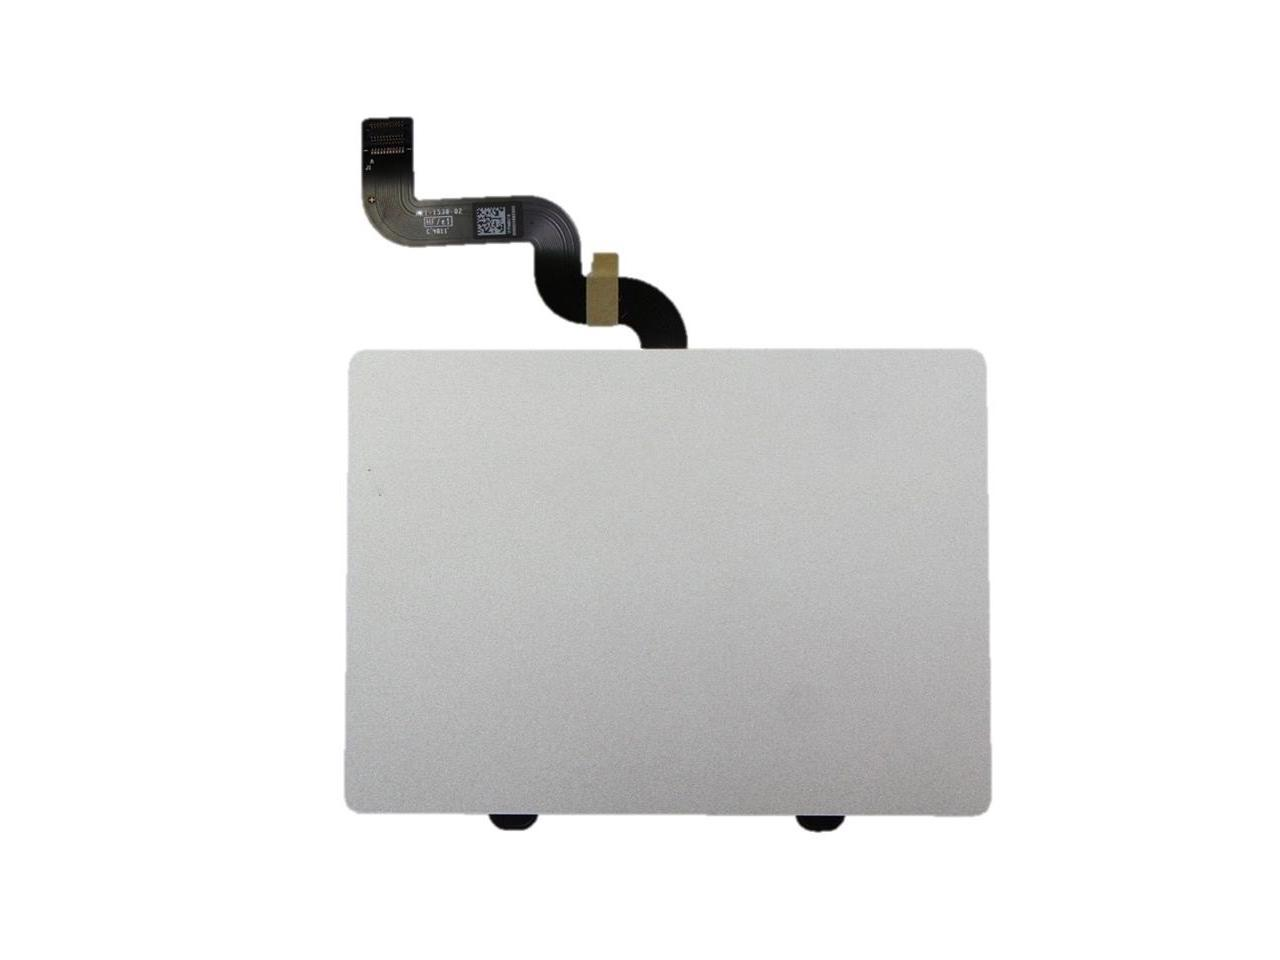 Padarsey Touchpad with Flex Cable Compatible with MacBook pro 15 Retina A1398 Trackpad ONLY Fit Mid 2012 MC975, MC976